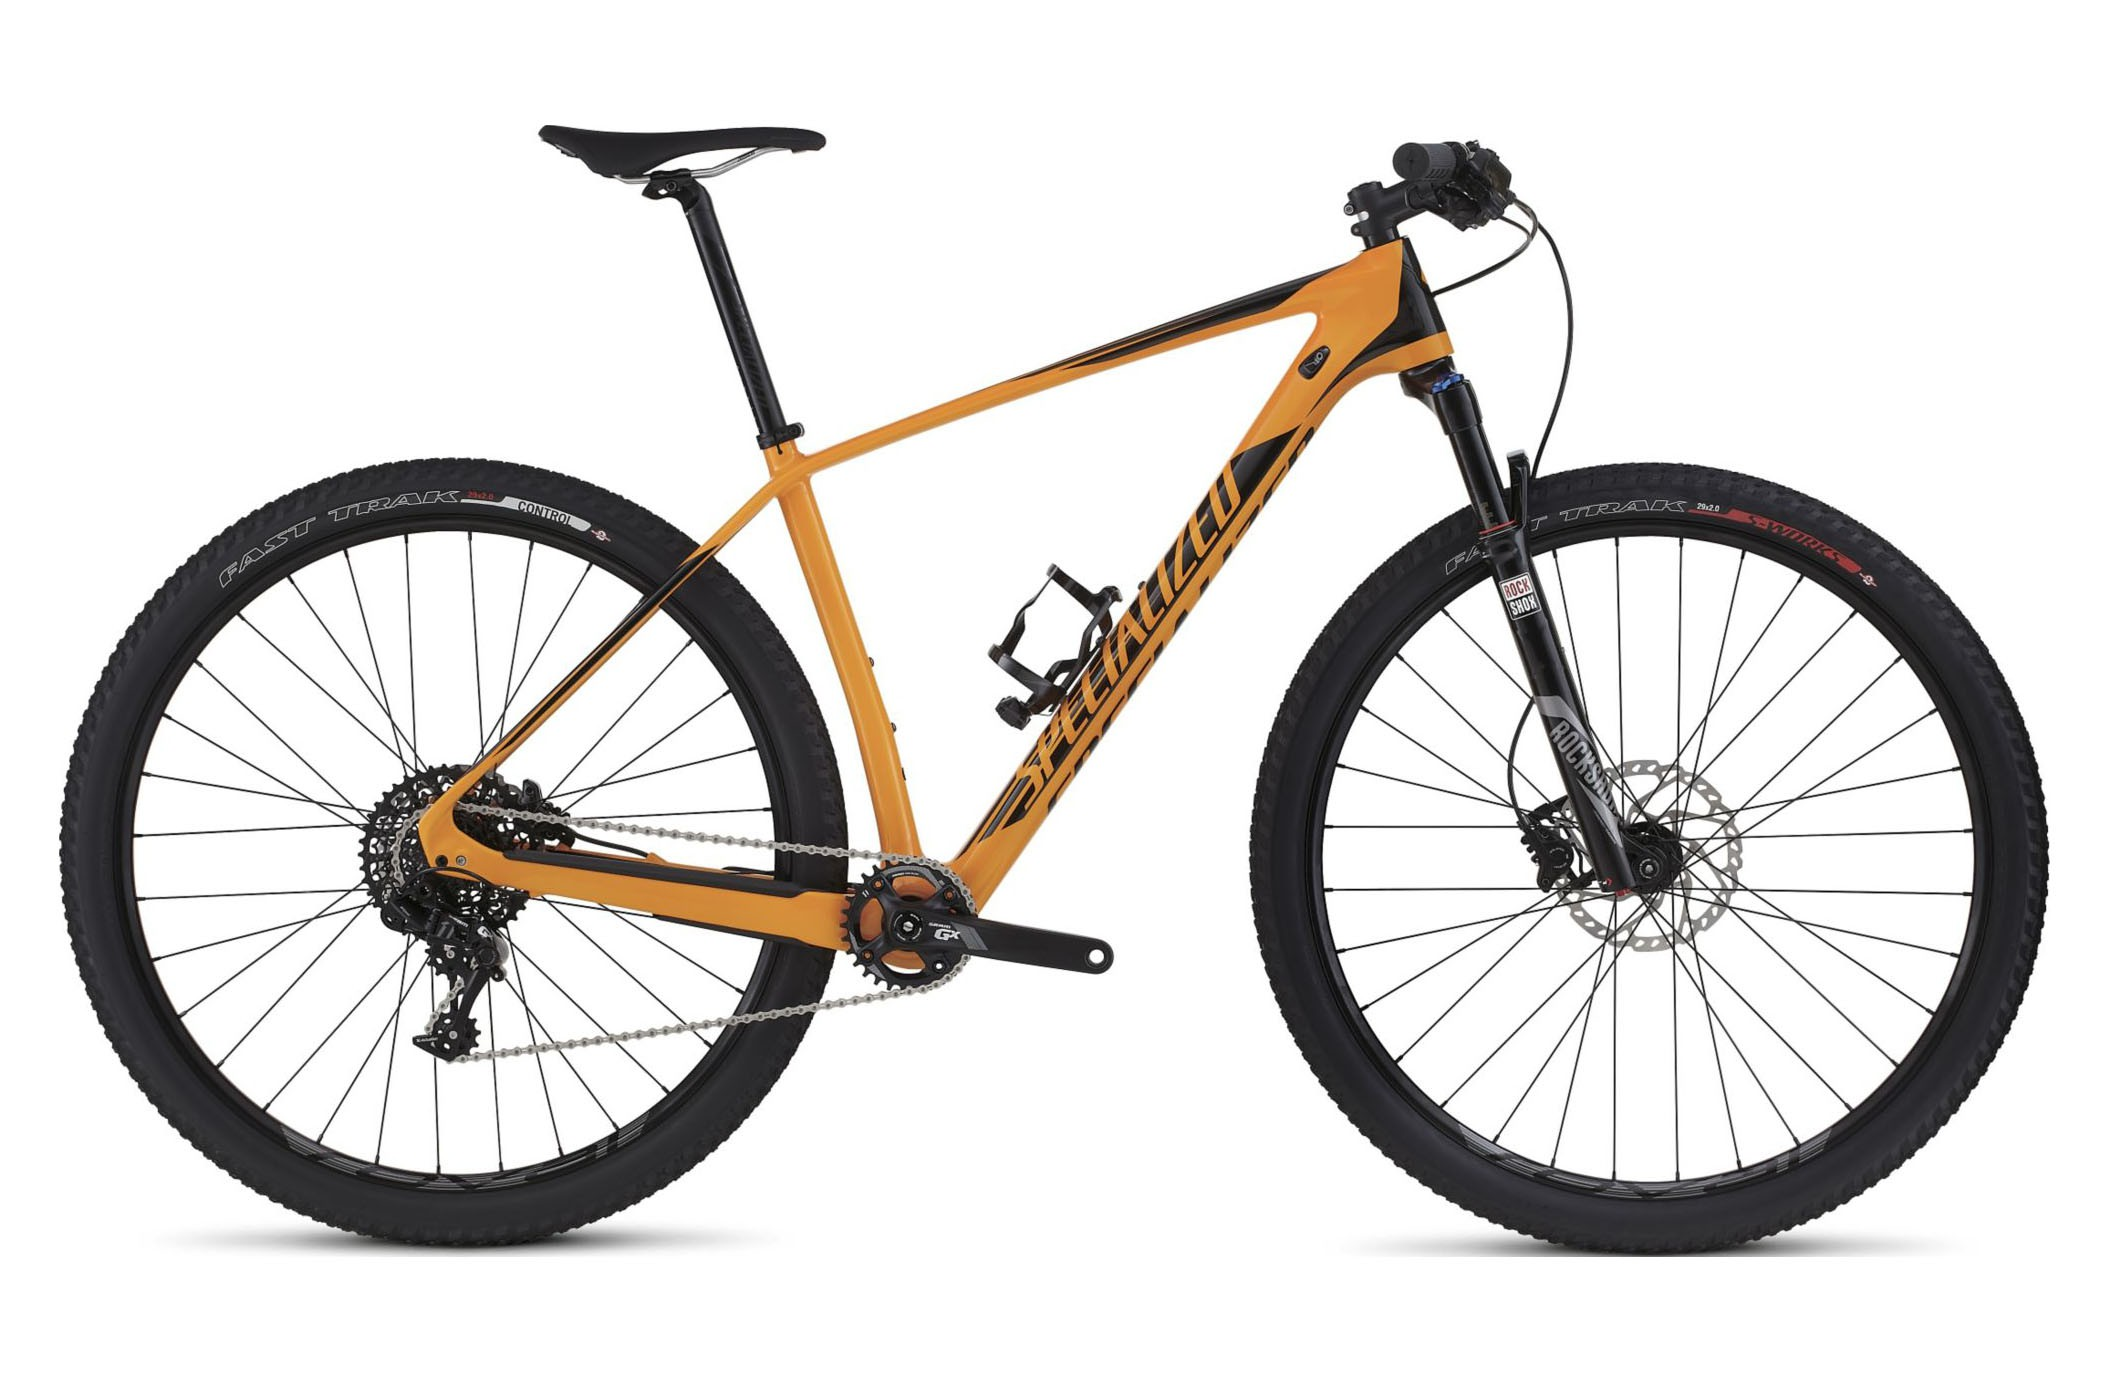 Горный велосипед Specialized Stumpjumper Comp Carbon 29 World Cup (2016)